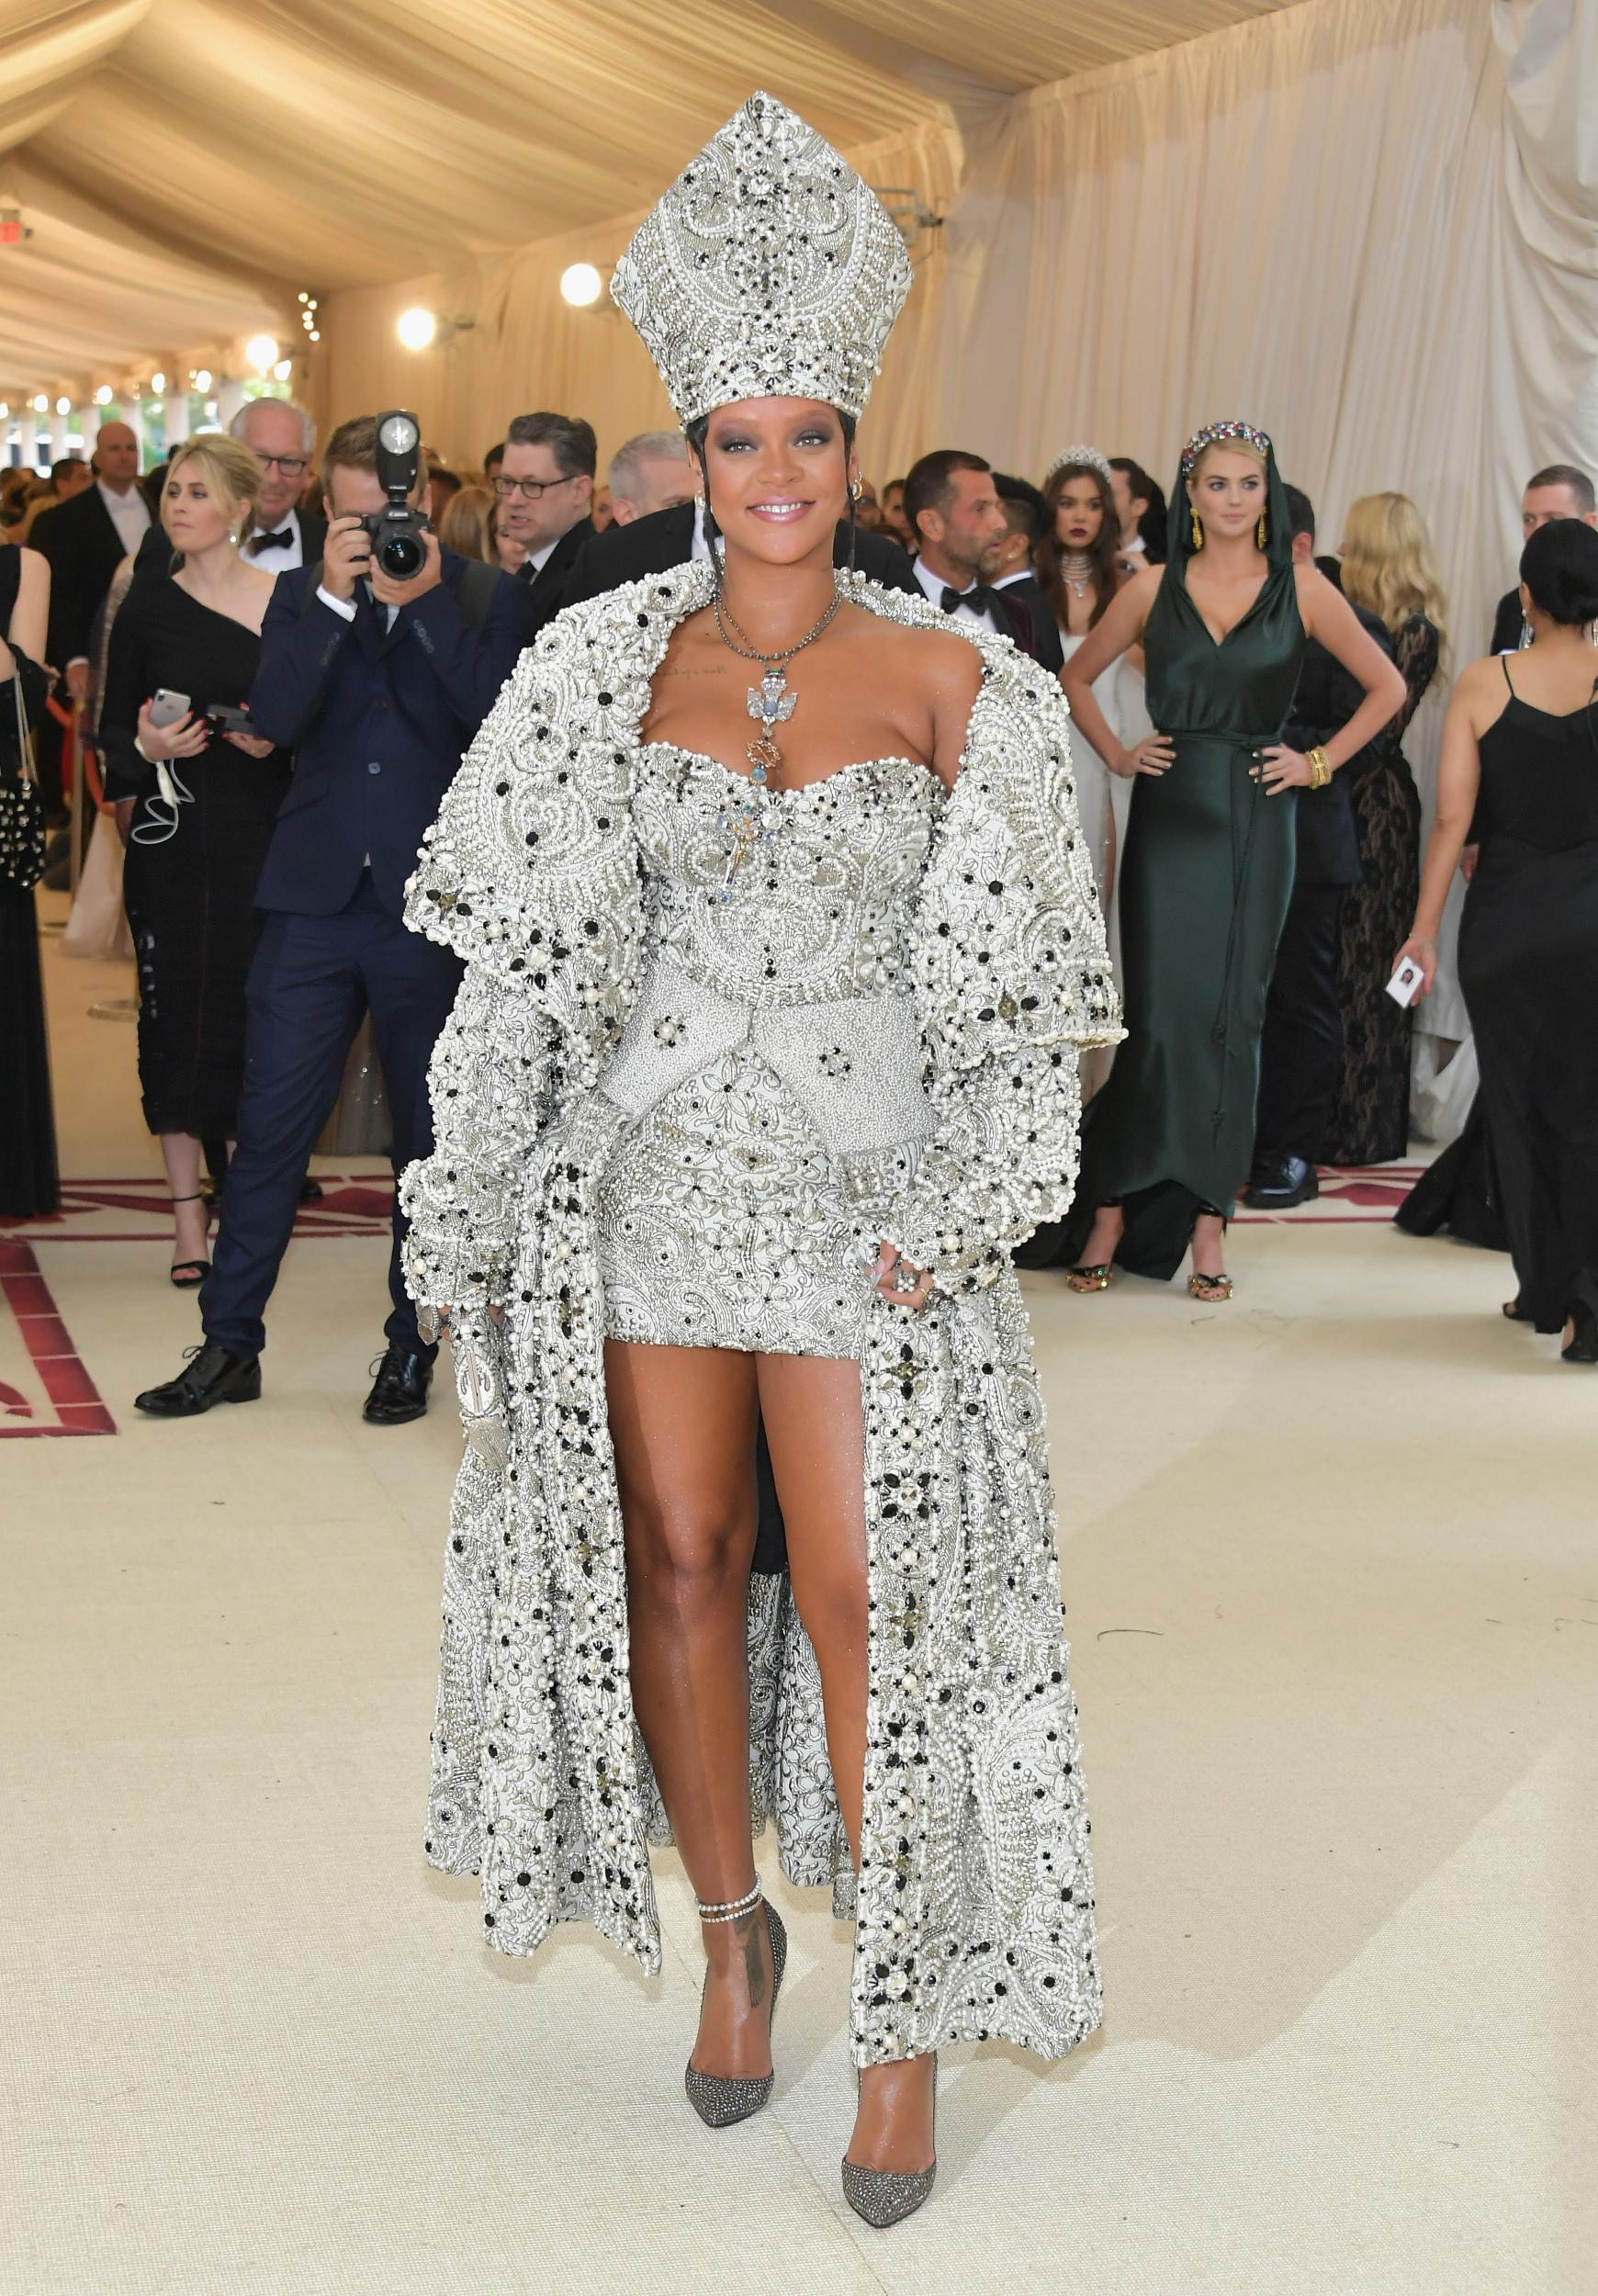 Met Gala 2019: Why is annual fashion event held on first Monday in May?